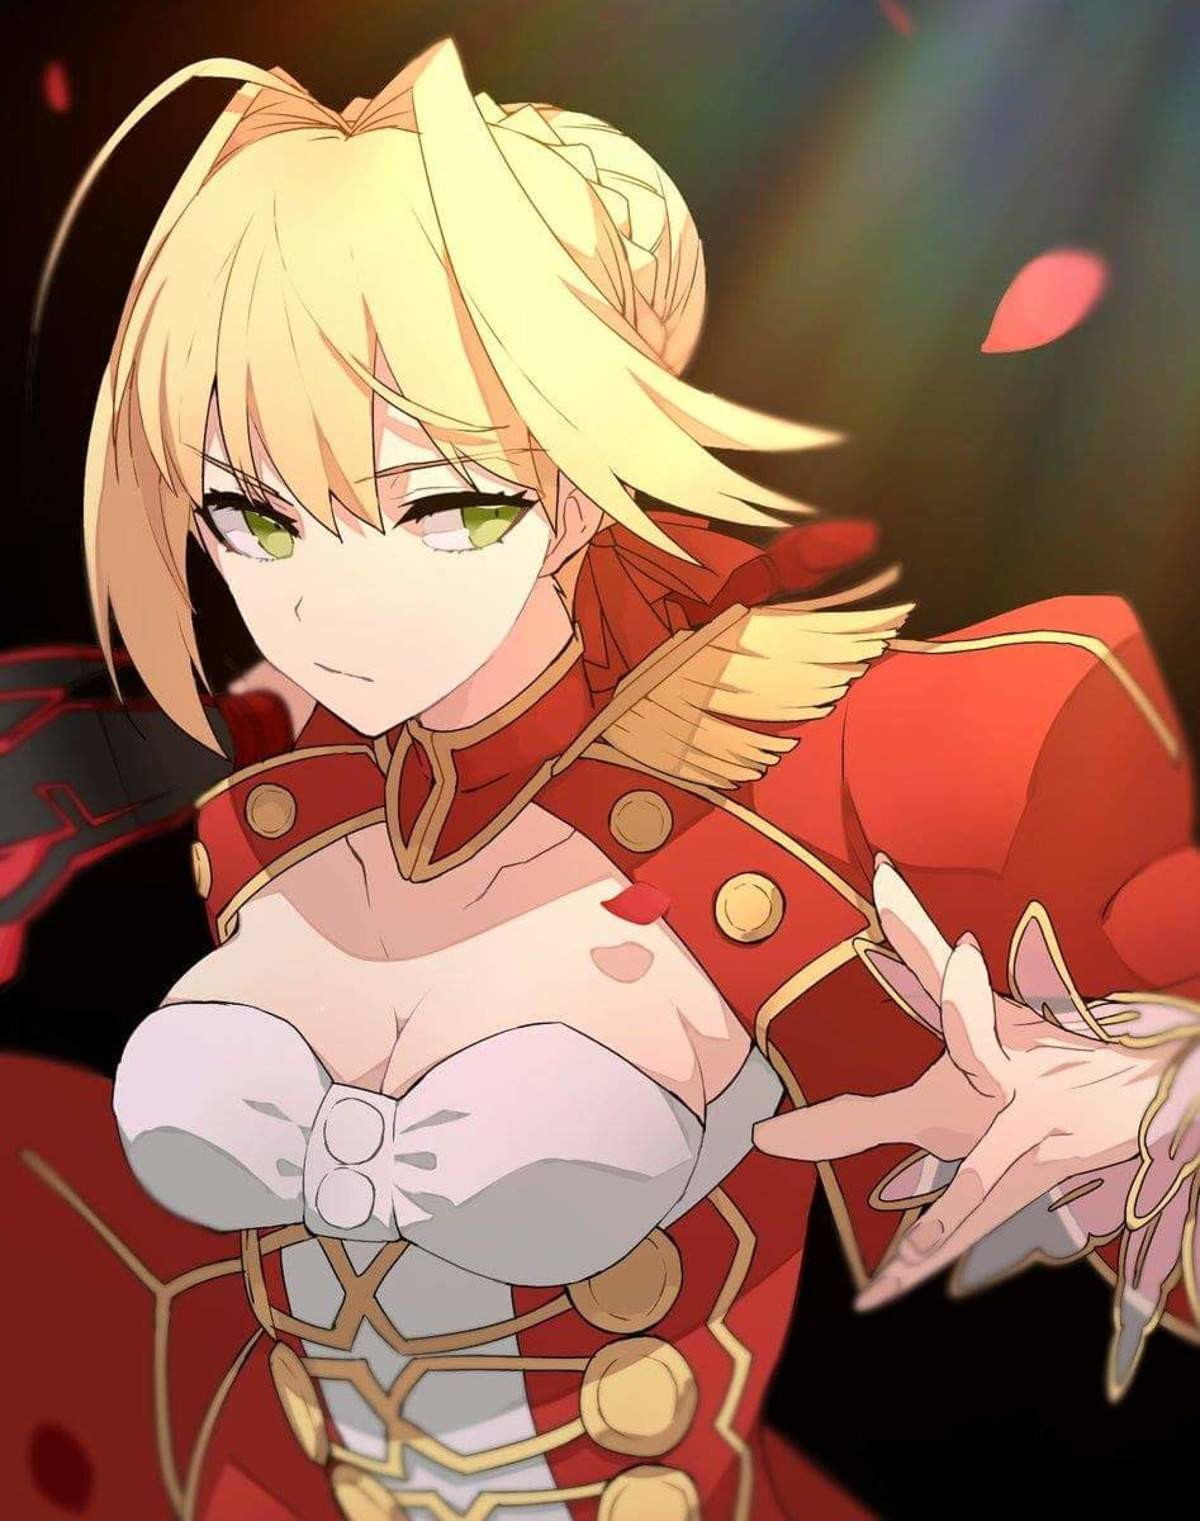 AESTHETIC UMU. join list: BewbDudes (2611 subs)Mention History join list:. That smile brings hope for a better tomorrow